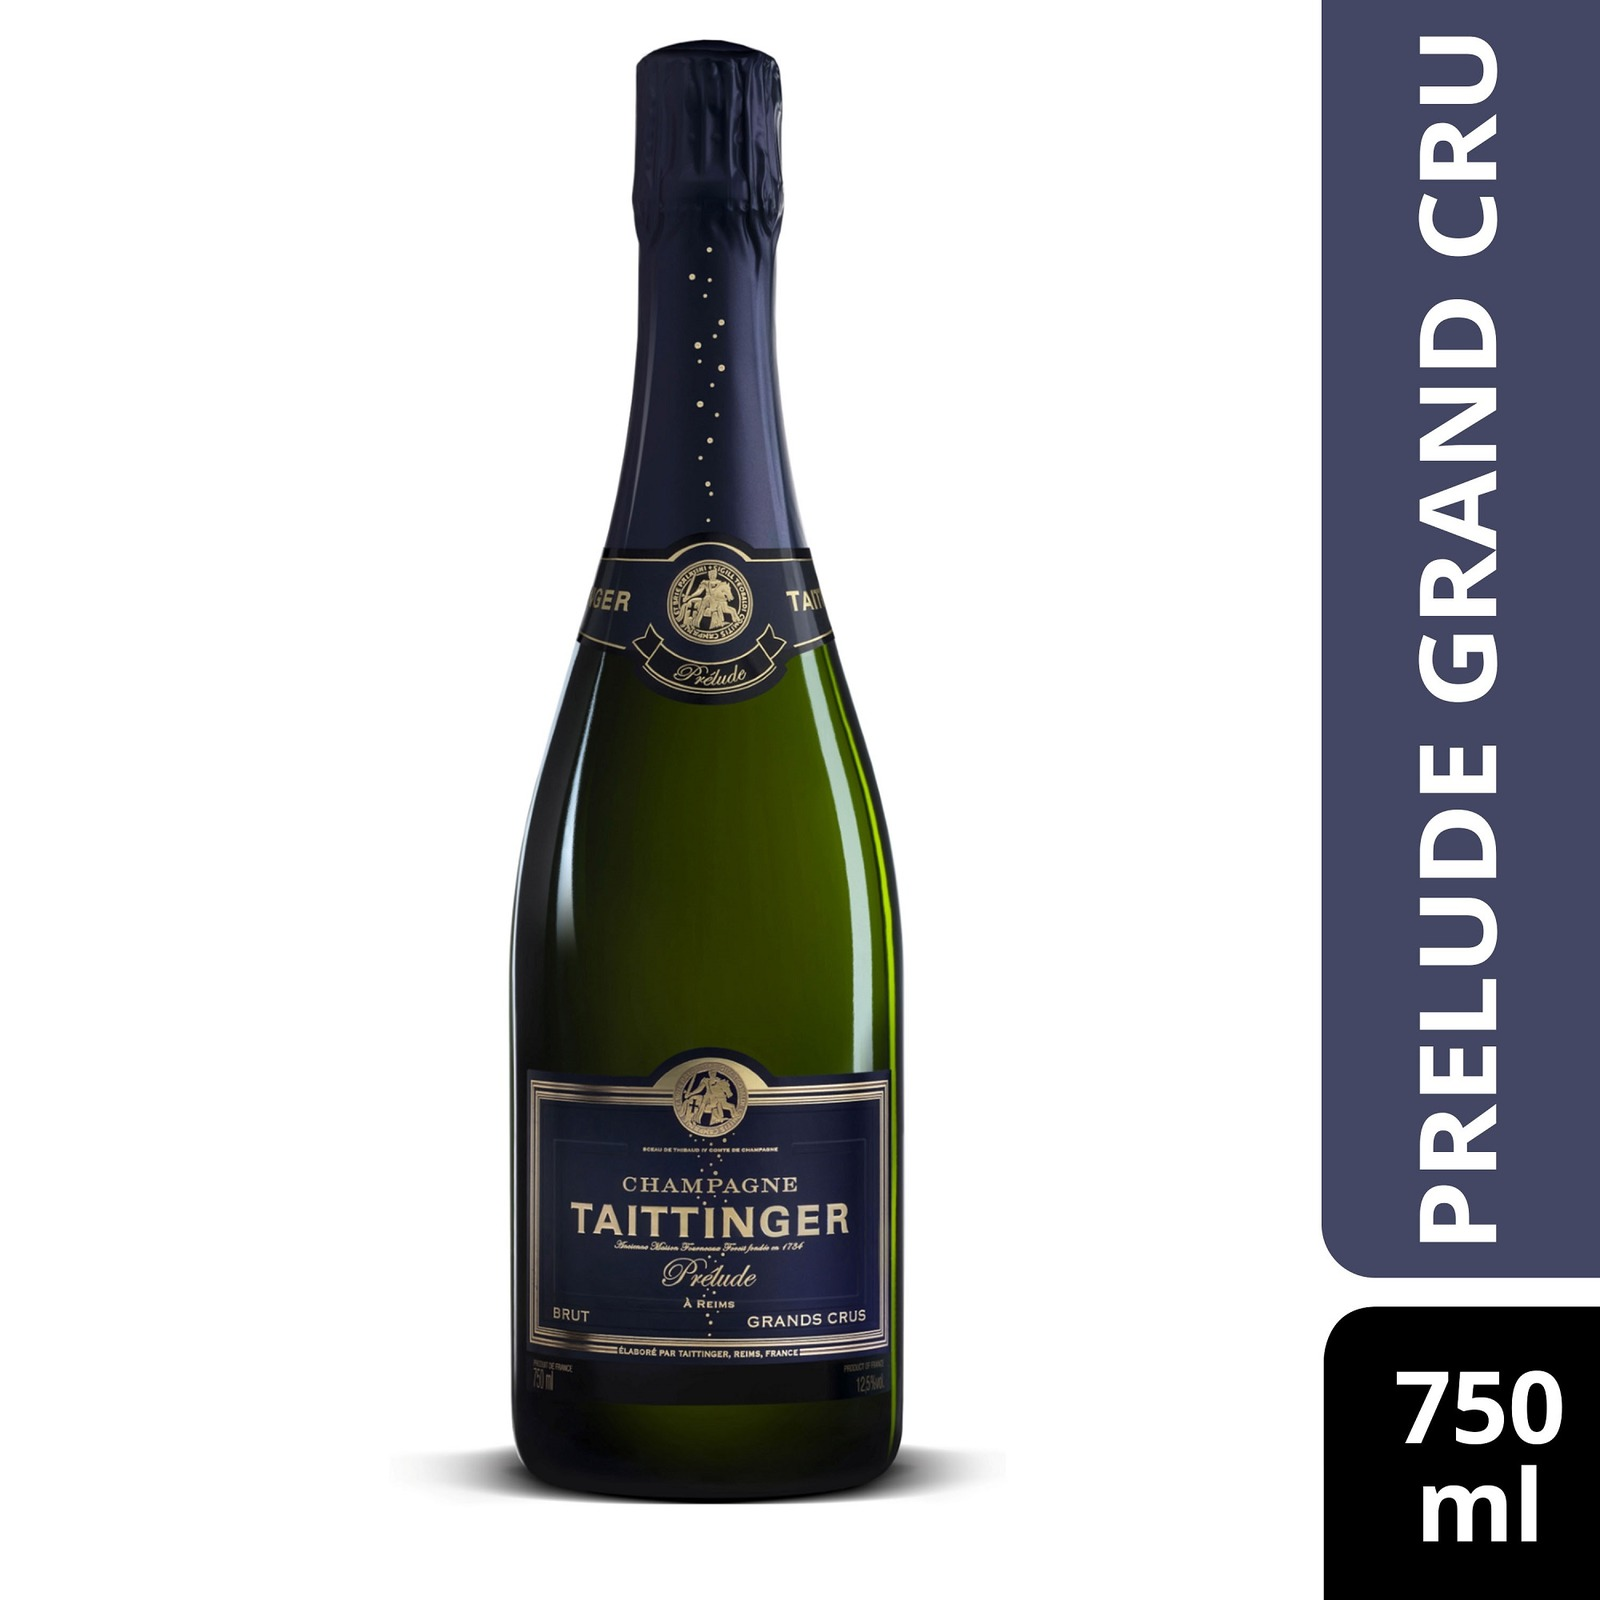 Taittinger Prelude Grand Cru-By Culina